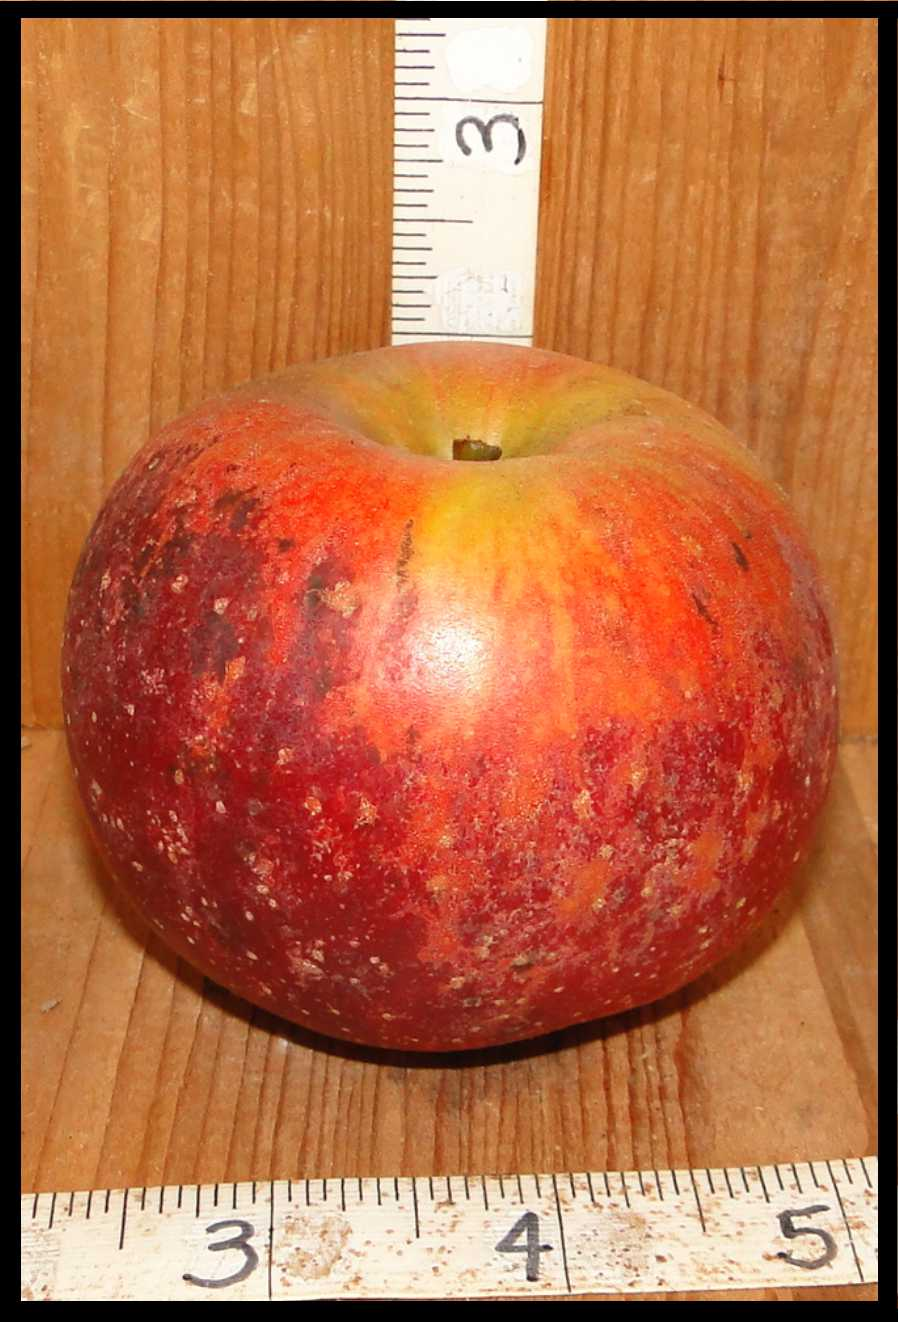 apple mottled with dark red, light red, orange, and yellow